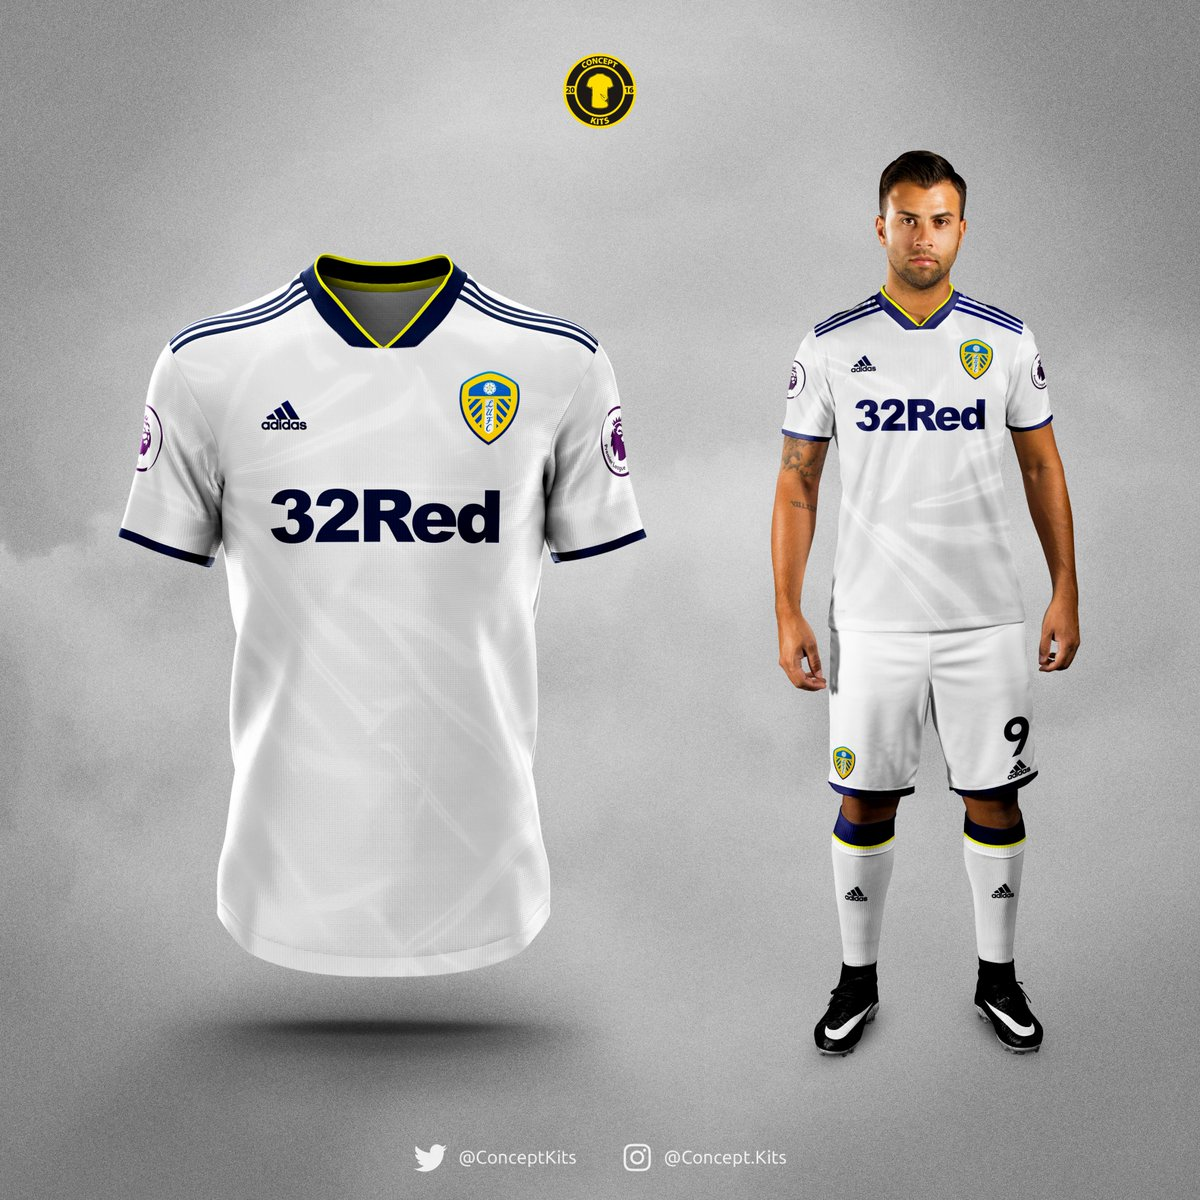 Concept Kits On Twitter Leeds United Football Club X Adidas Premier League Home Away And Third Kit Concepts For The 2020 21 Season Lufc Mot Alaw Premierleague Adidas Newkit Conceptkits Kitconcept Promotion Wearepremierleague